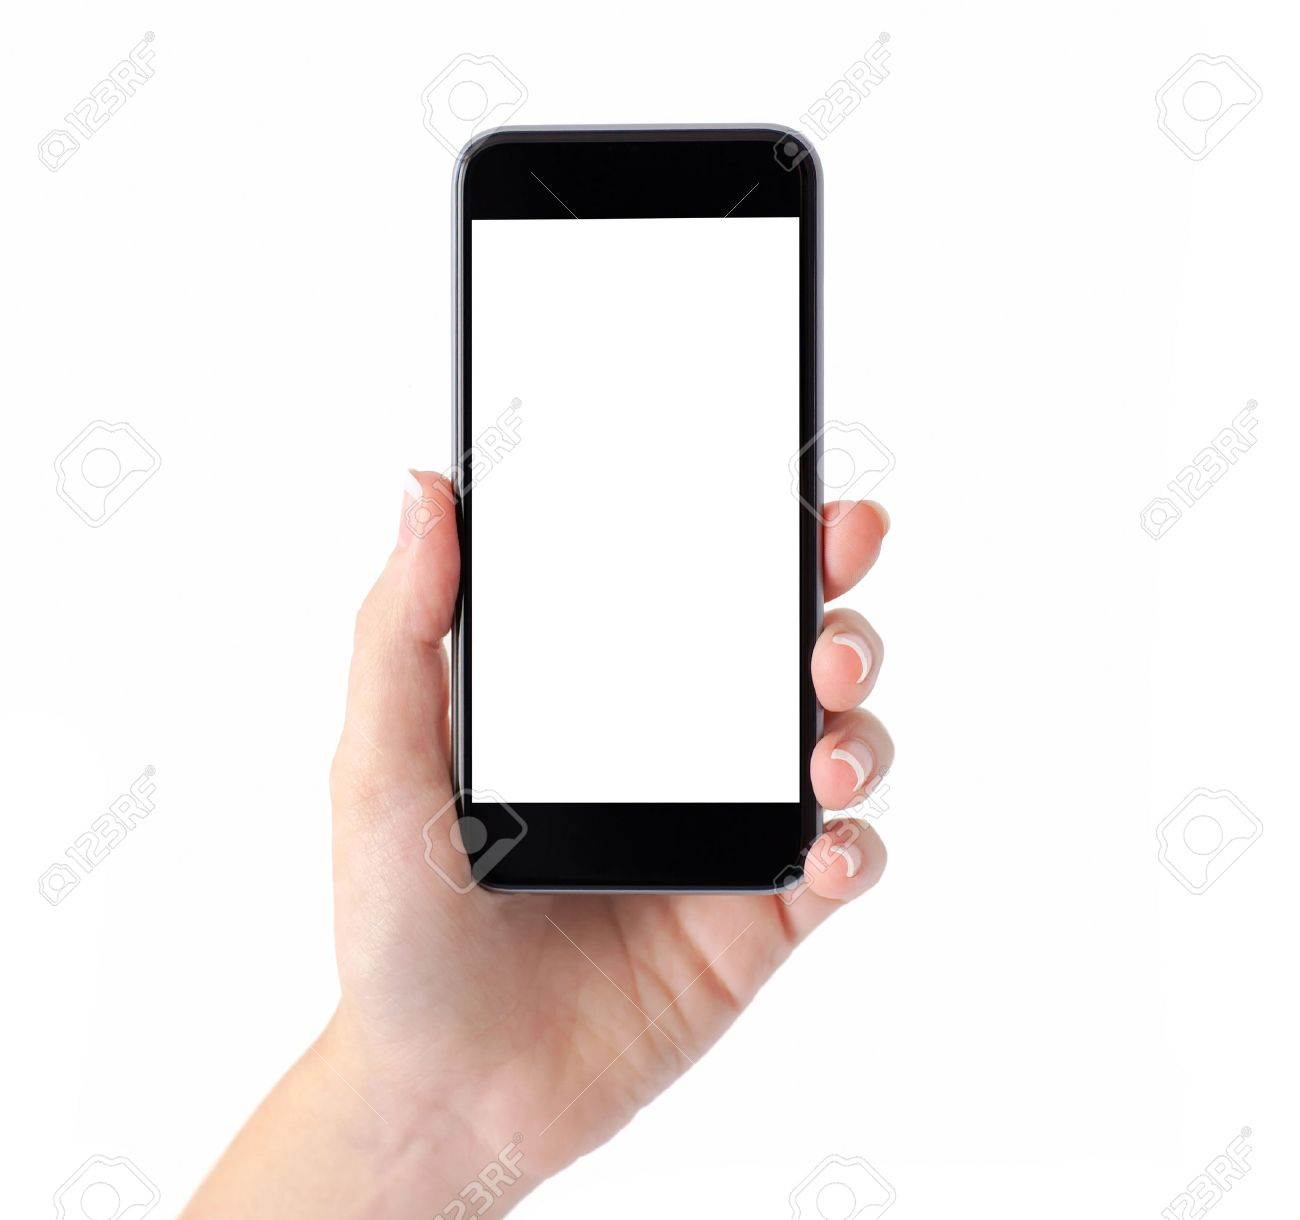 Isolated female hand holding a phone with white screen - 33668086